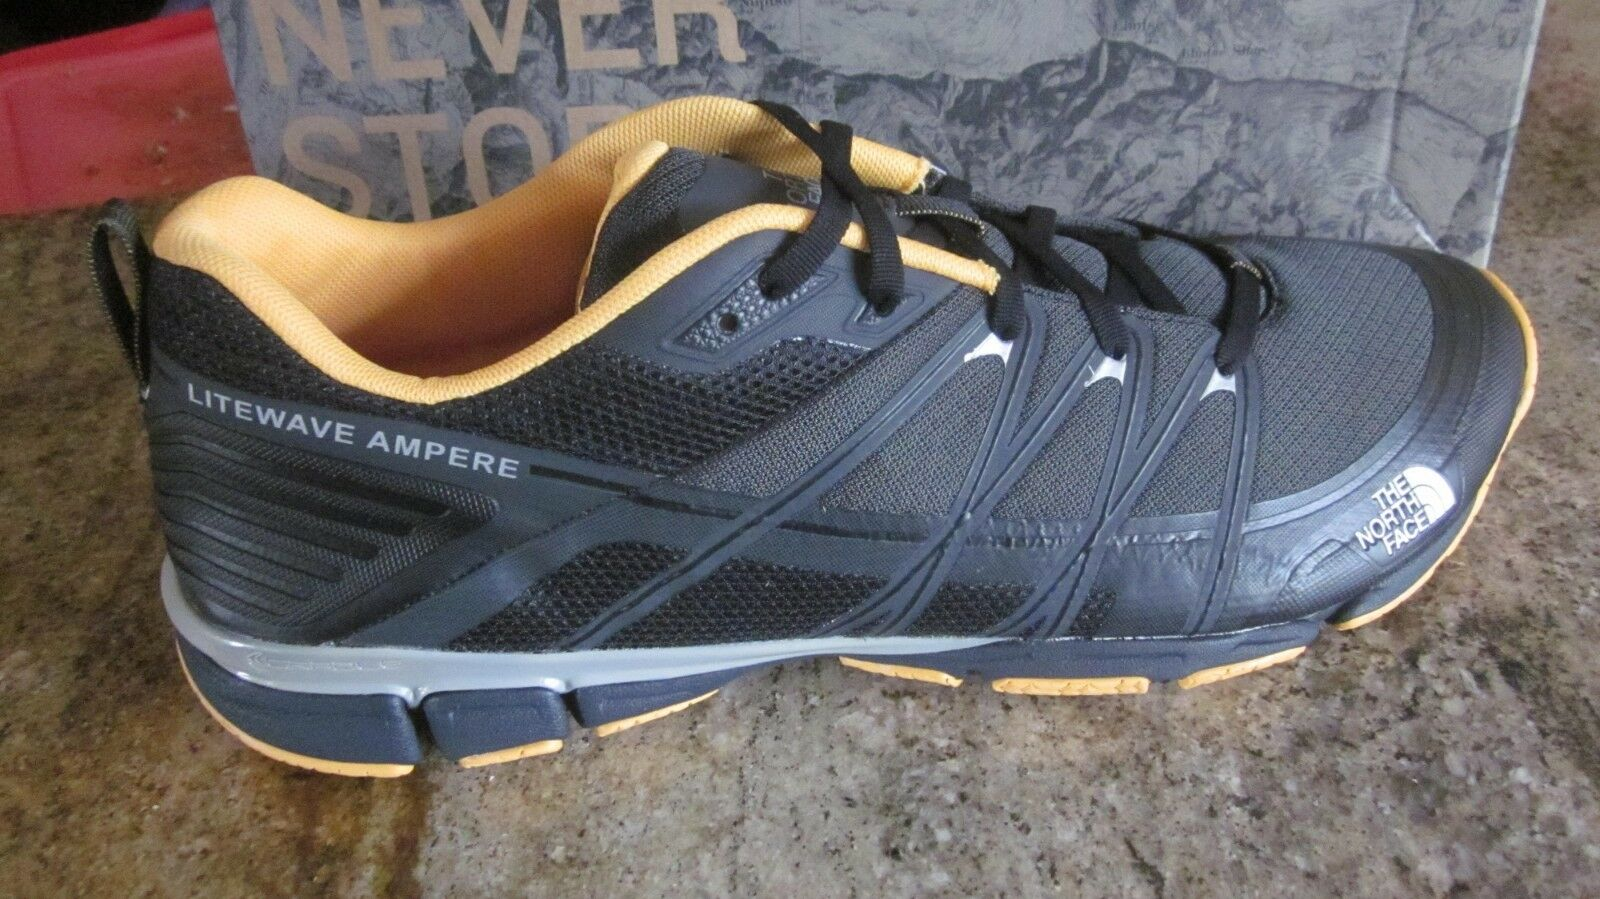 The North Face  Men's litewave ampere shoes SZ 12  save up to 30-50% off